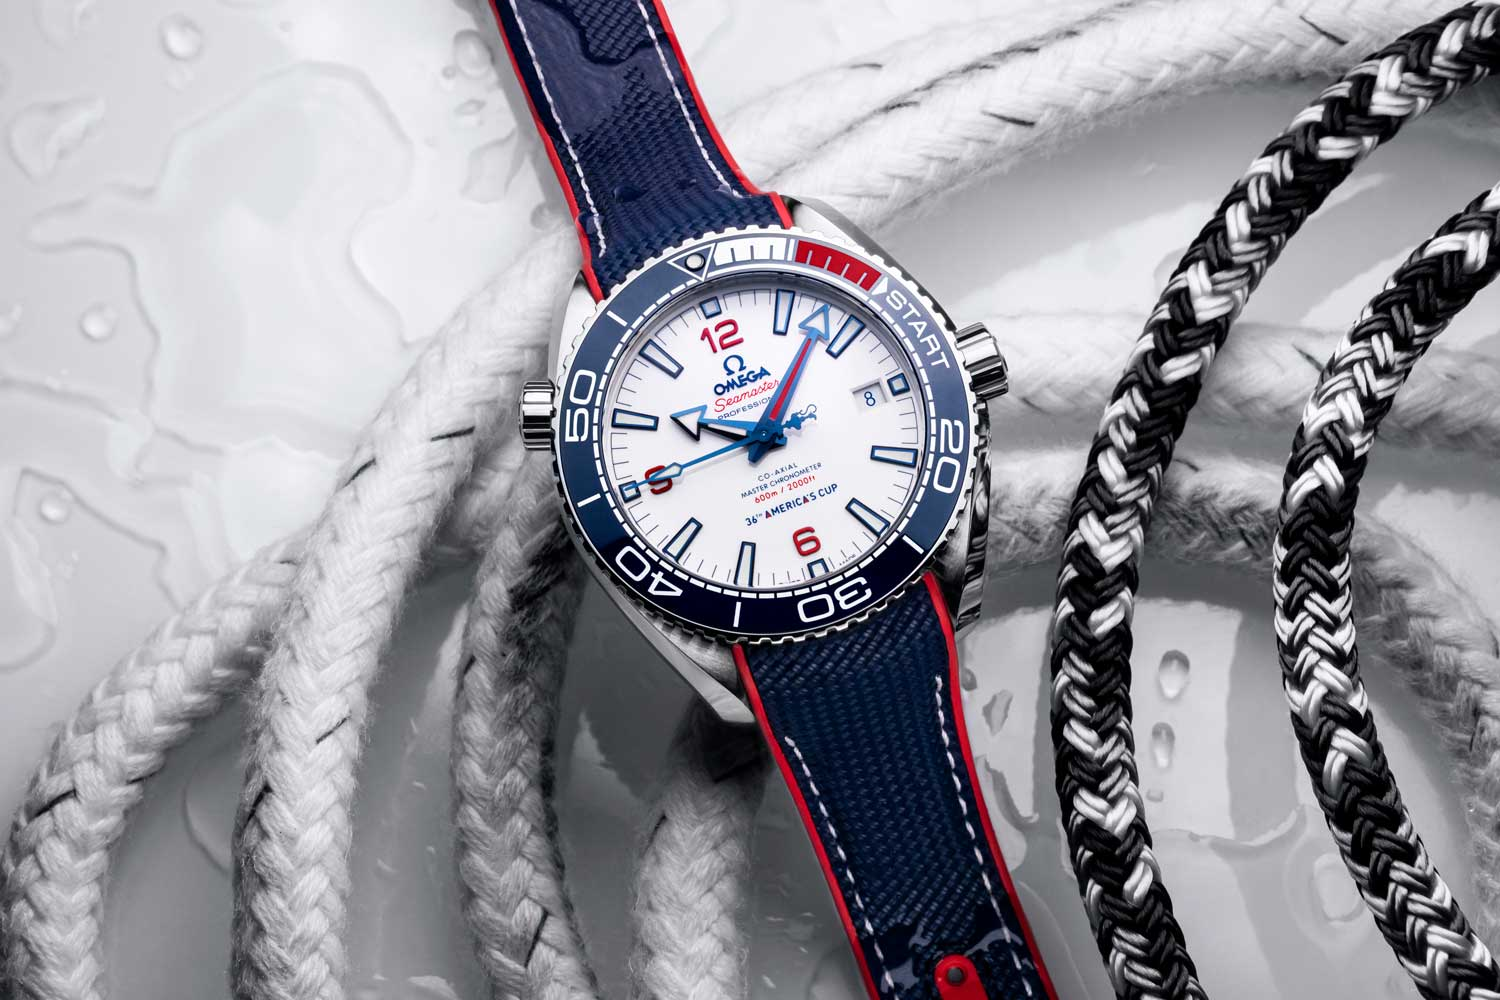 The 2,021 piece limited edition Omega Seamaster Planet Ocean 600M 36th America's Cup LE, with a unique countdown bezel design for the regatta